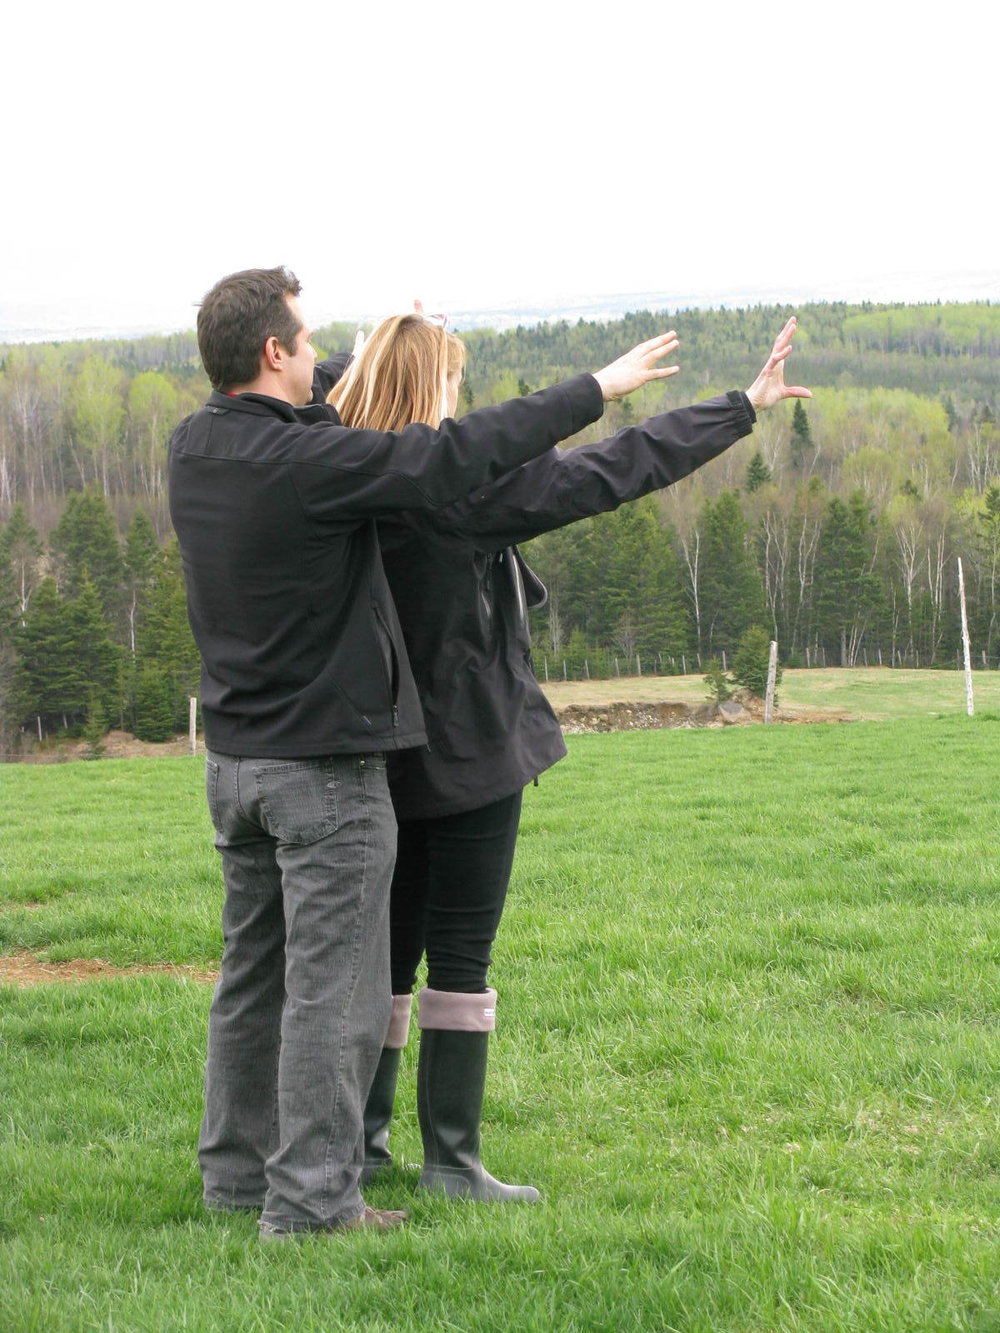 With director Emile Gaudreault envisioning the siteof the Farmsite build of the House, Barn , roads landscaping etc. on the vastsite in Baie Saint Paul, Qc. This was the start.